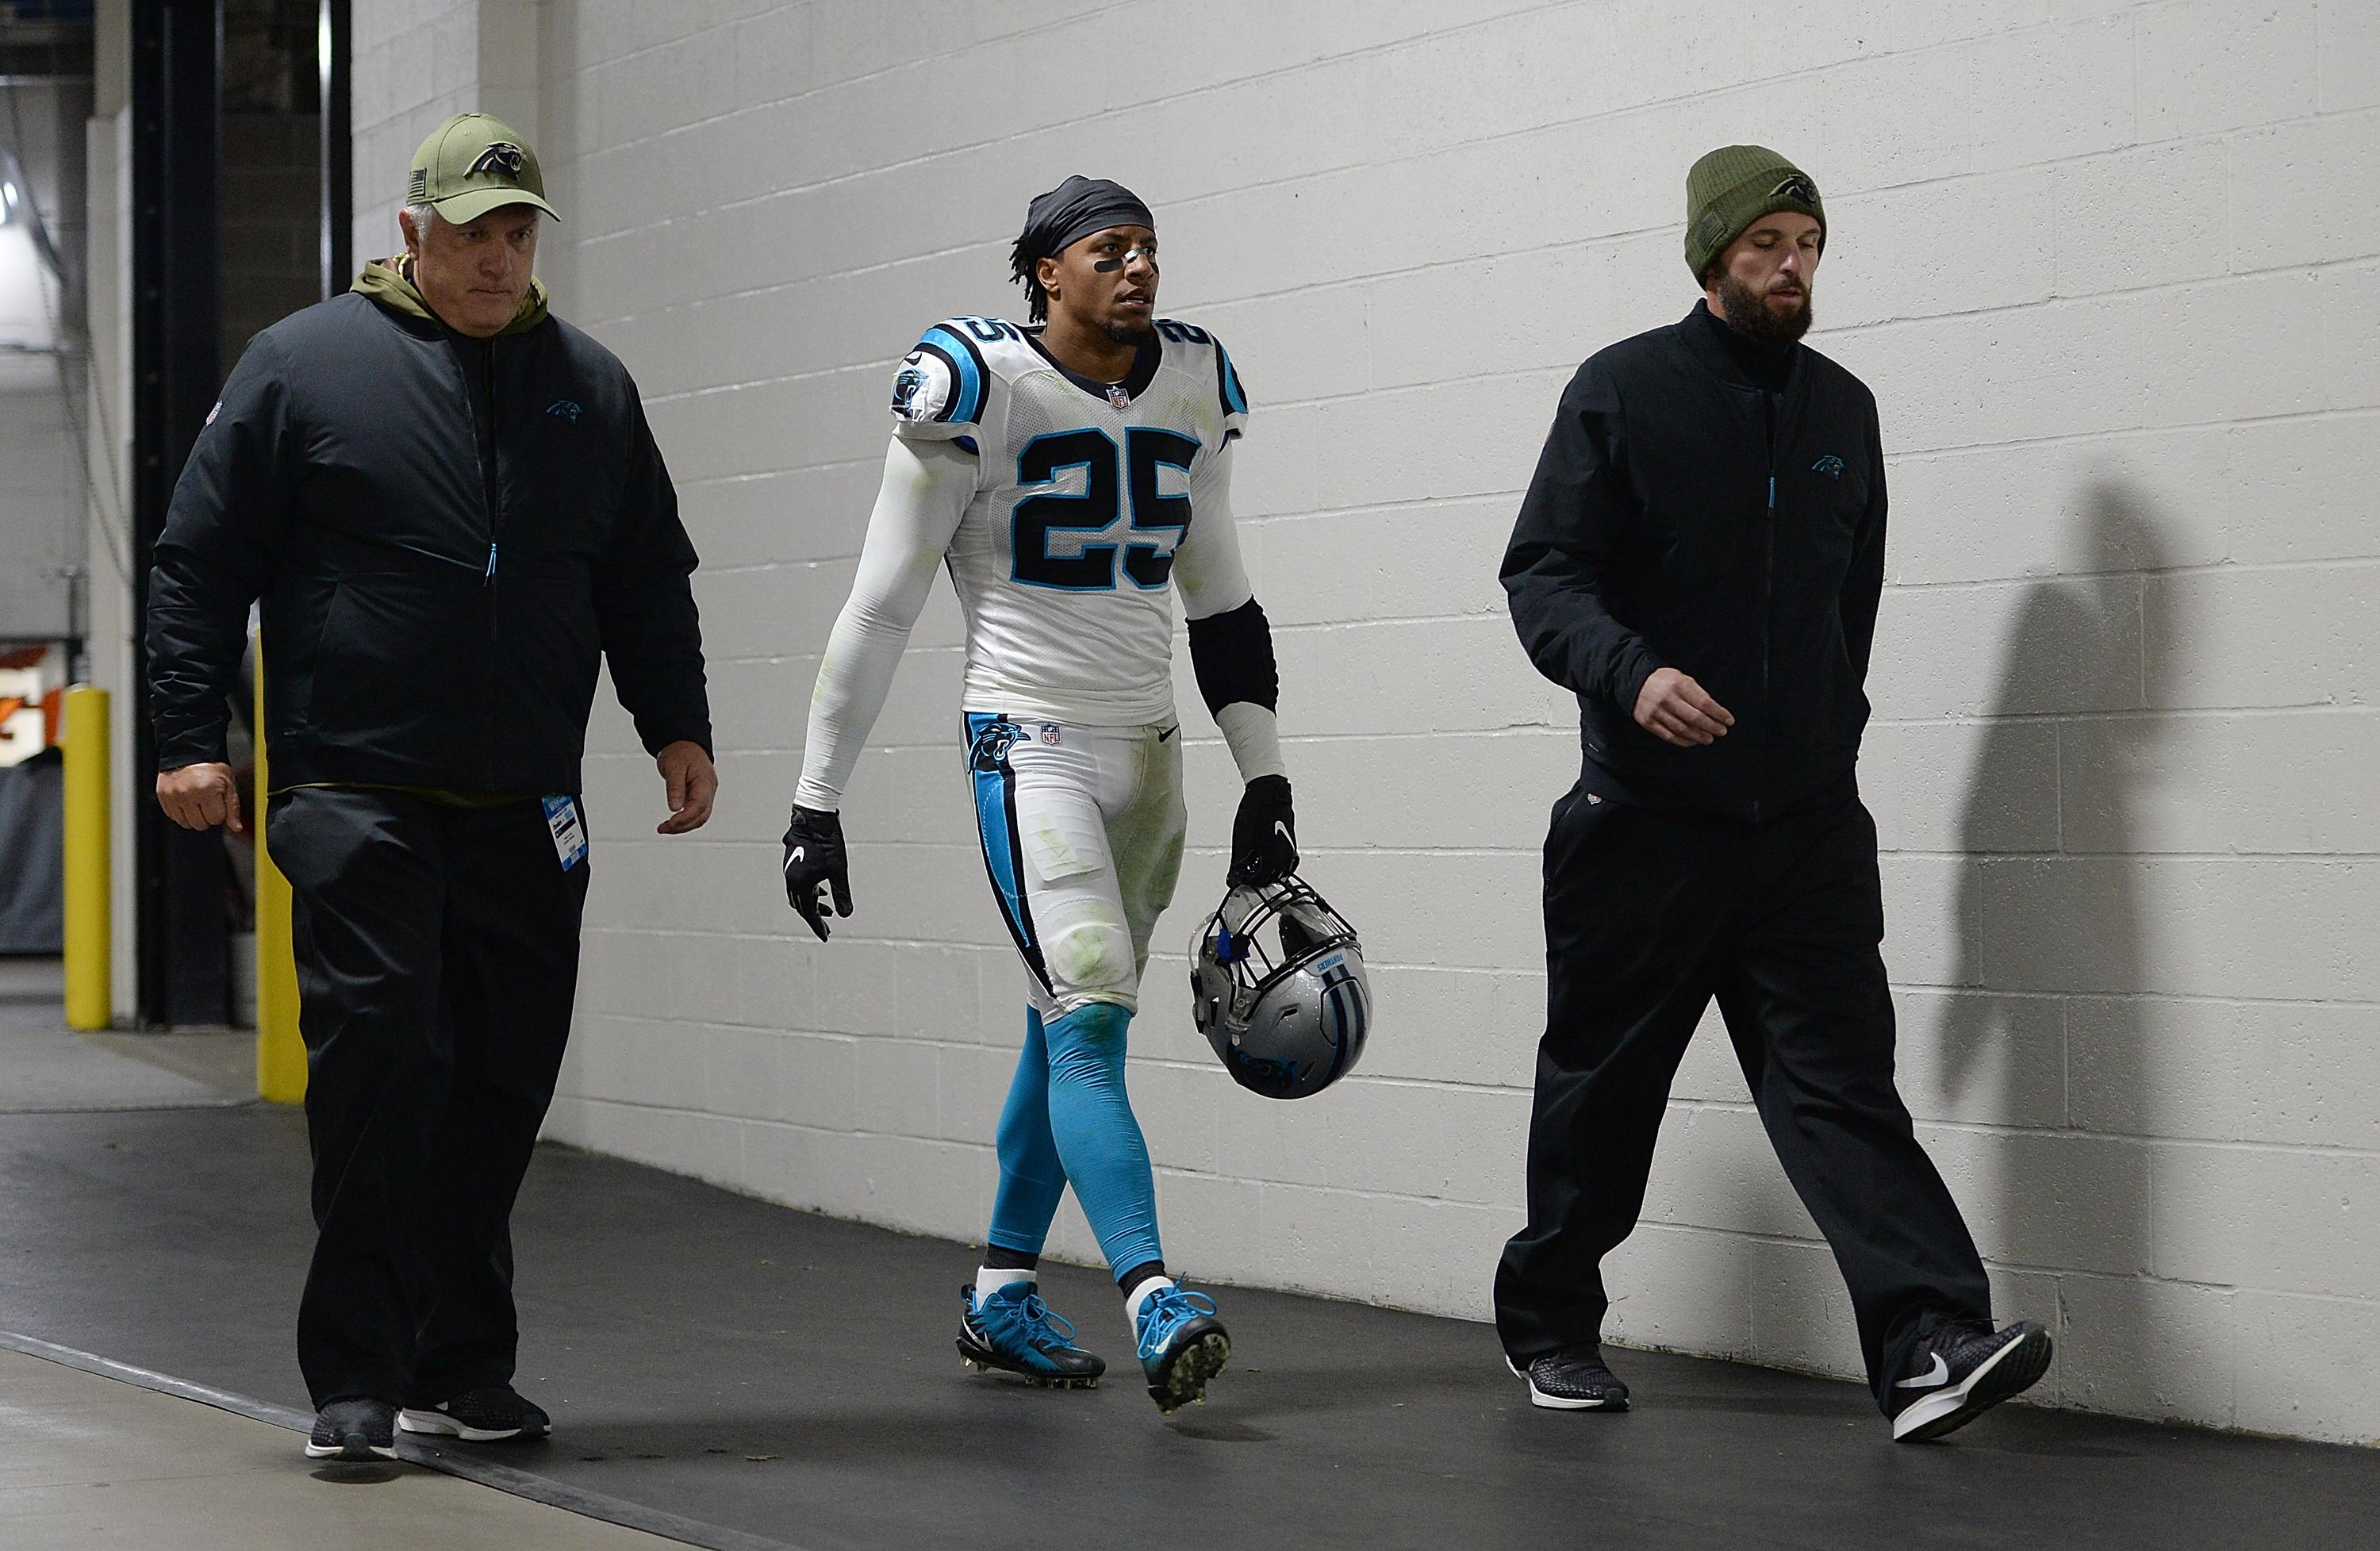 Eric Reid claims NFL drug tested him for fifth time after his ejection vs. Steelers